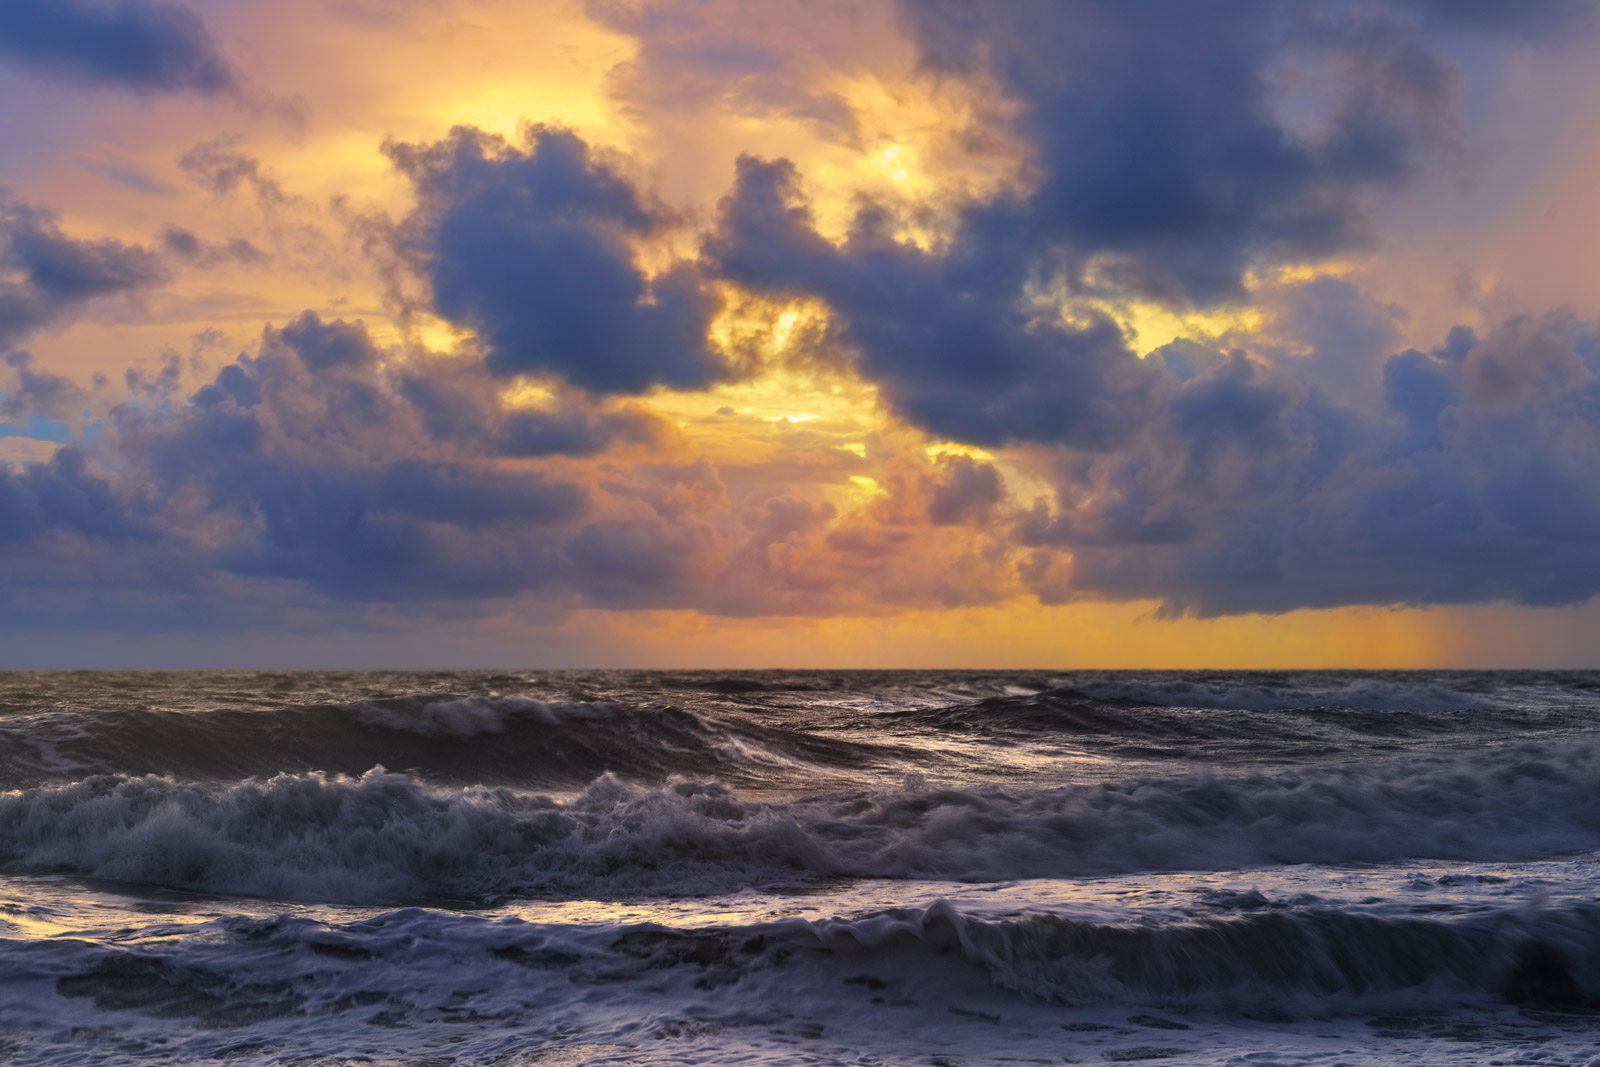 Florida, Tequesta, Tropical, Storm, Sunrise, Waves, Atlantic, Coast, limited edition, photograph, fine art, landscape, photo